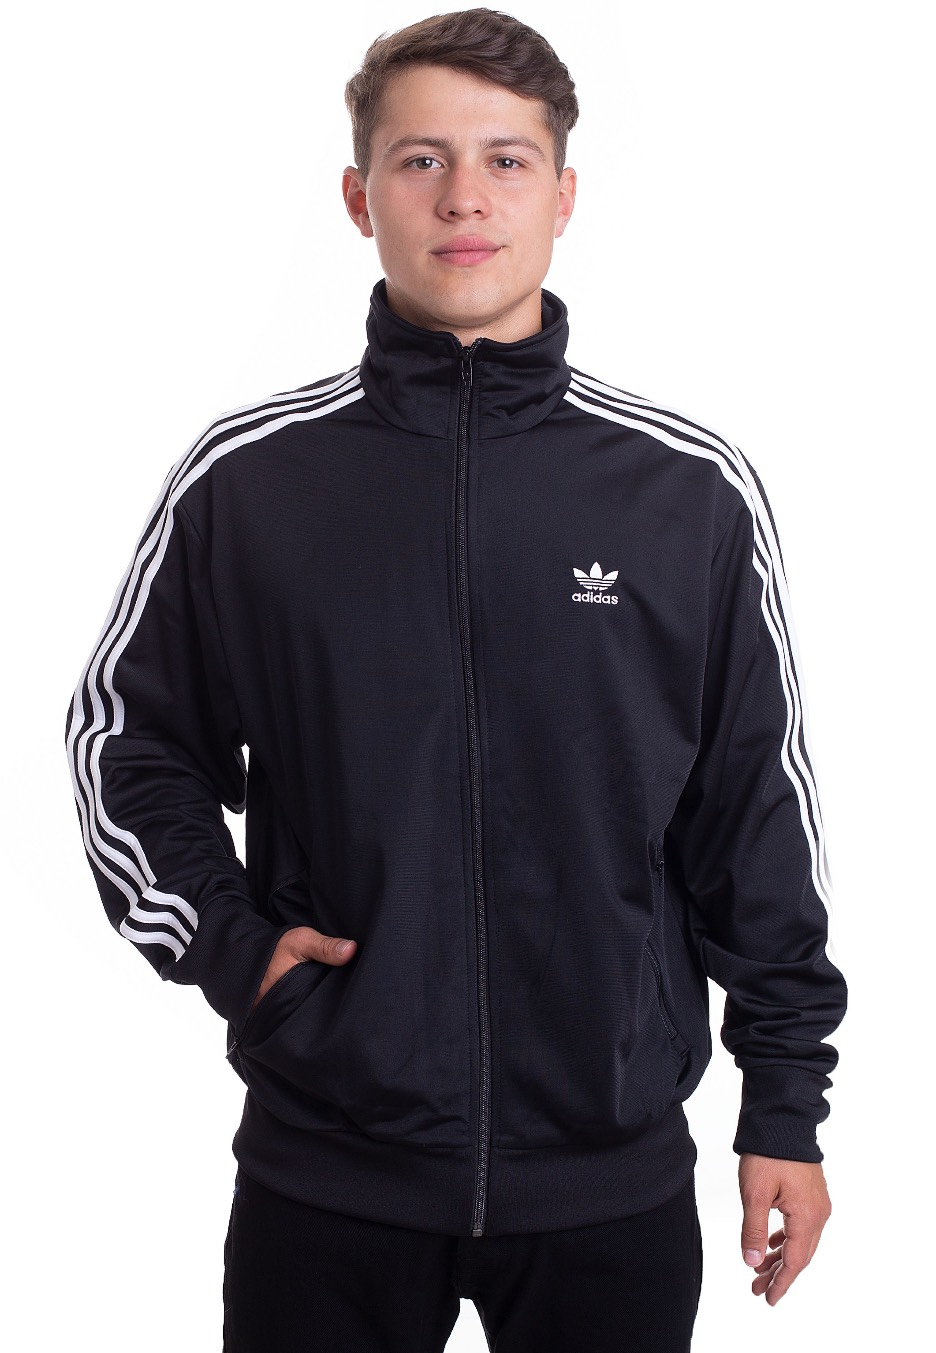 lino esposas Accidental  Adidas - Firebird TT Black - Track Jacket - Fashion Shop - Impericon.com UK